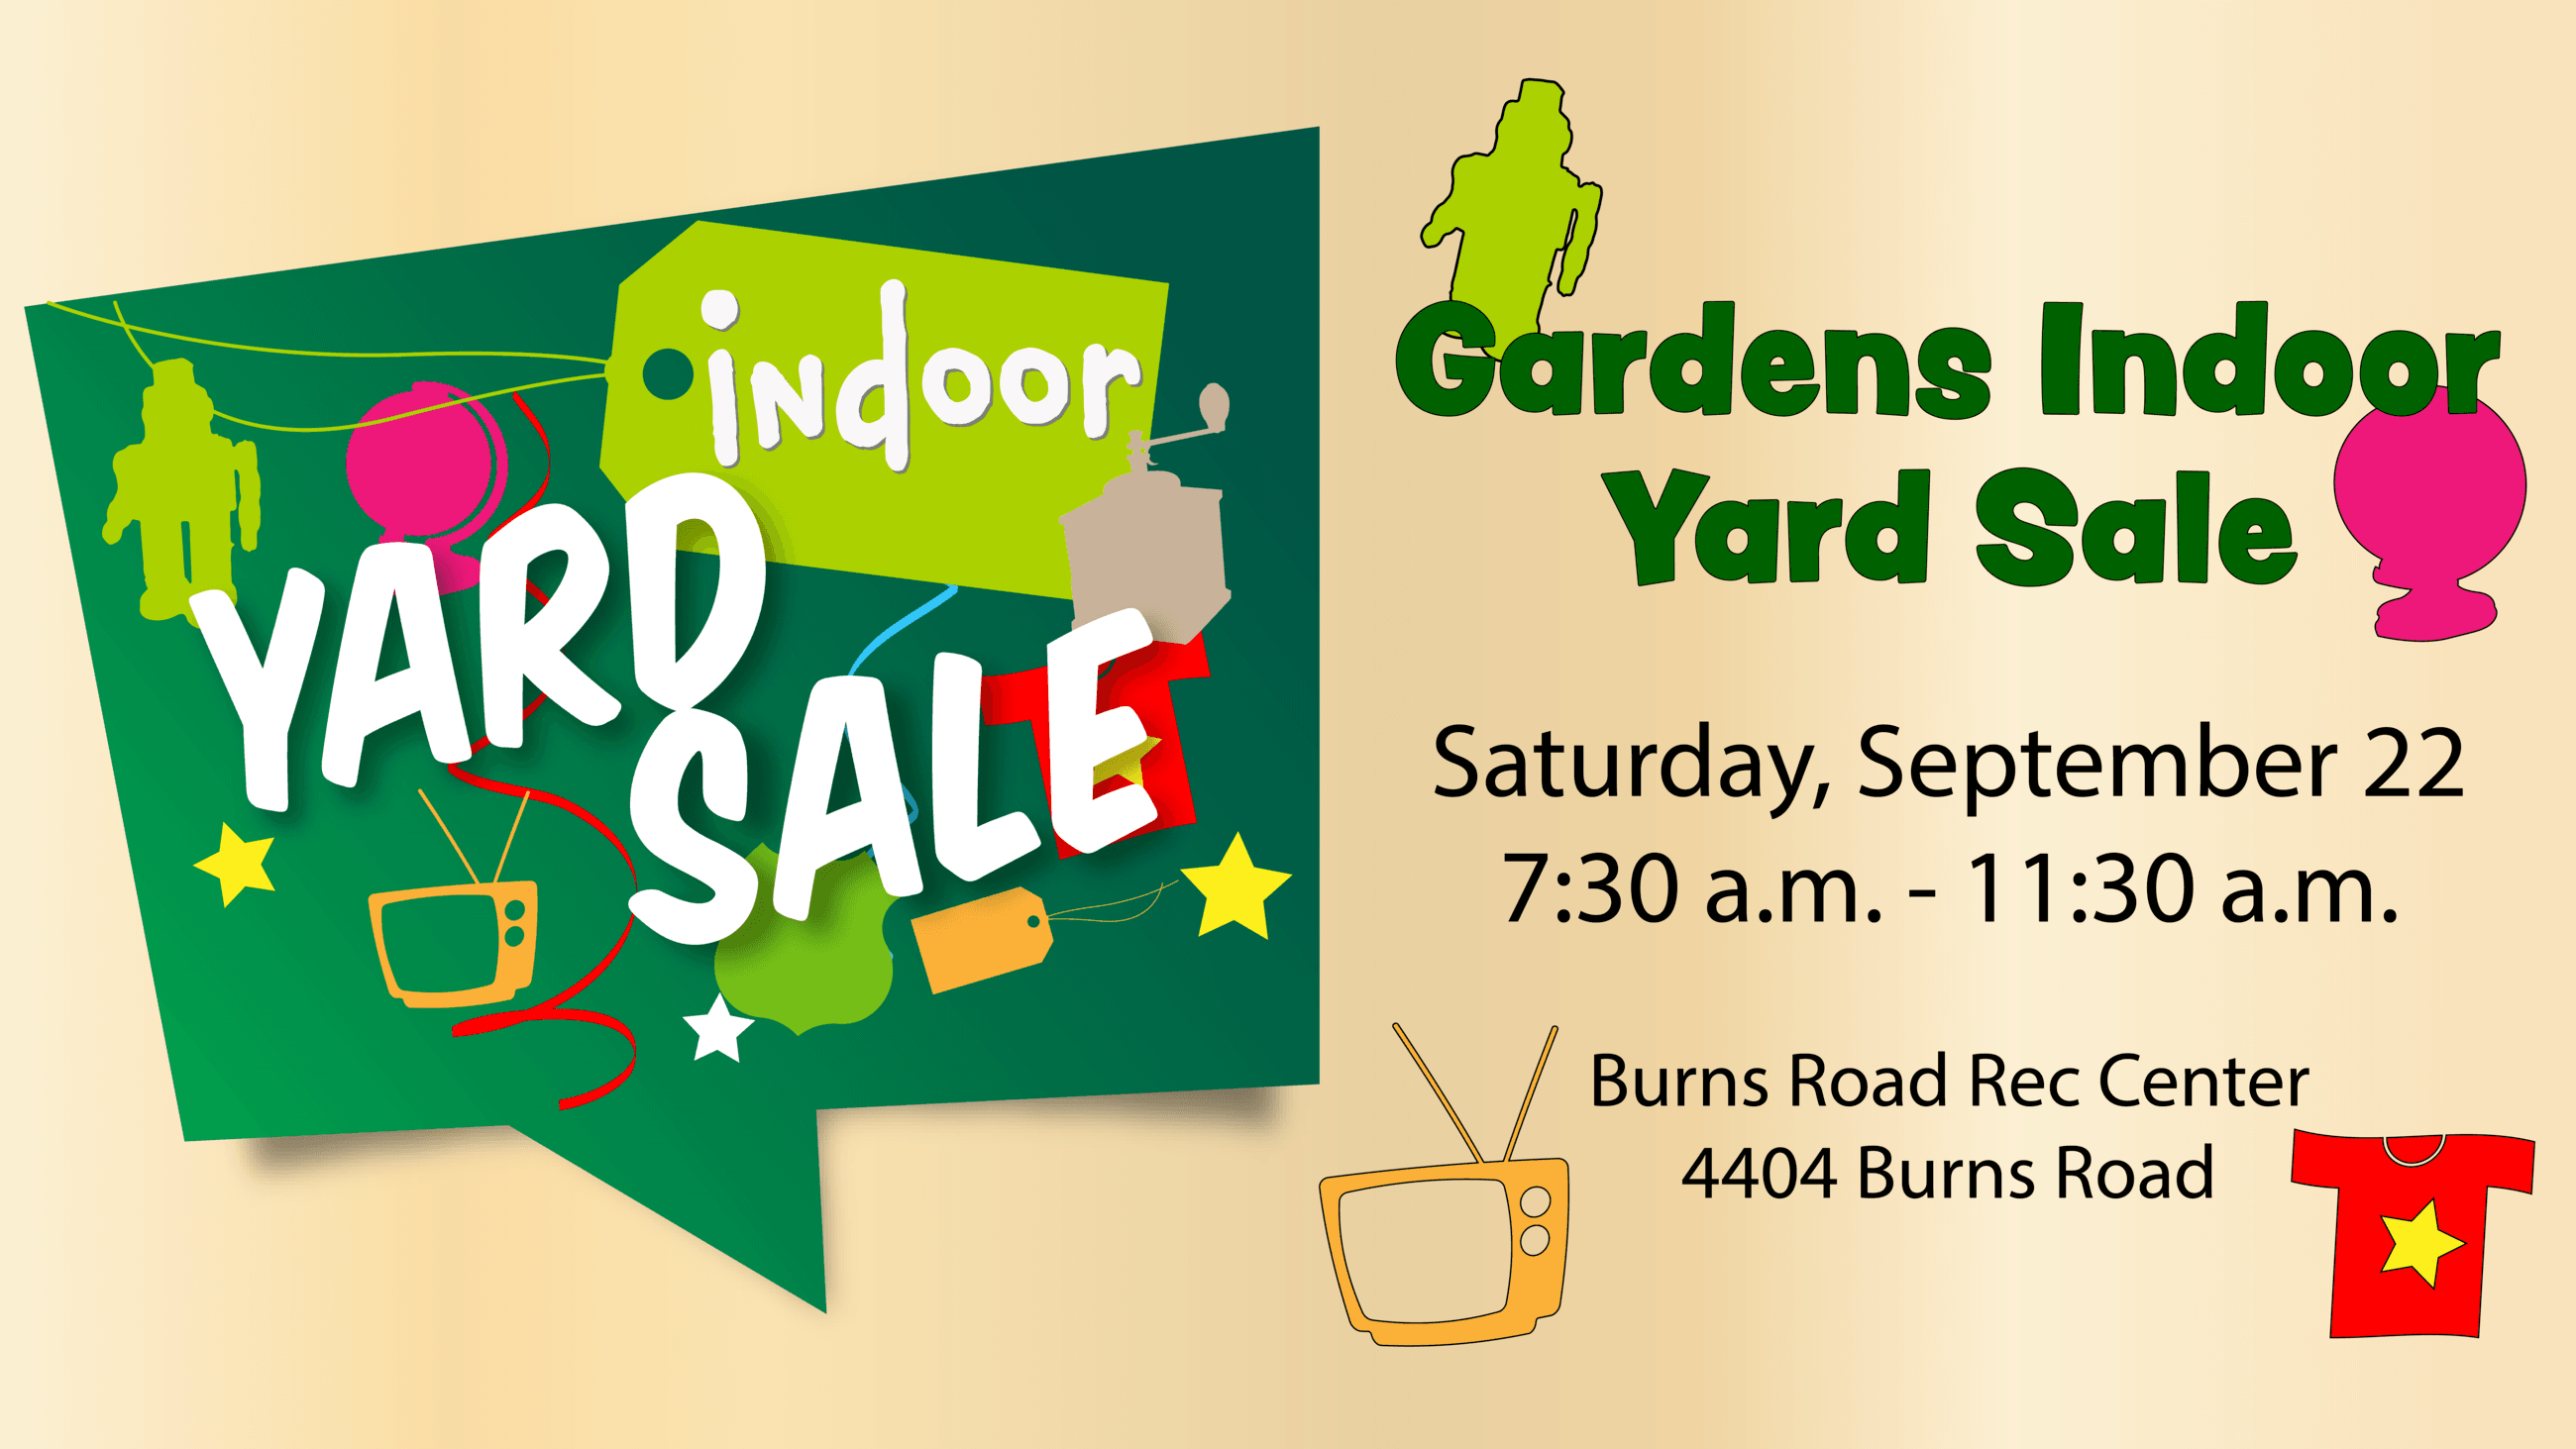 graphic reading Gardens Indoor Yard Sale September 22nd 7:30 a.m. to 11:30 a.m.